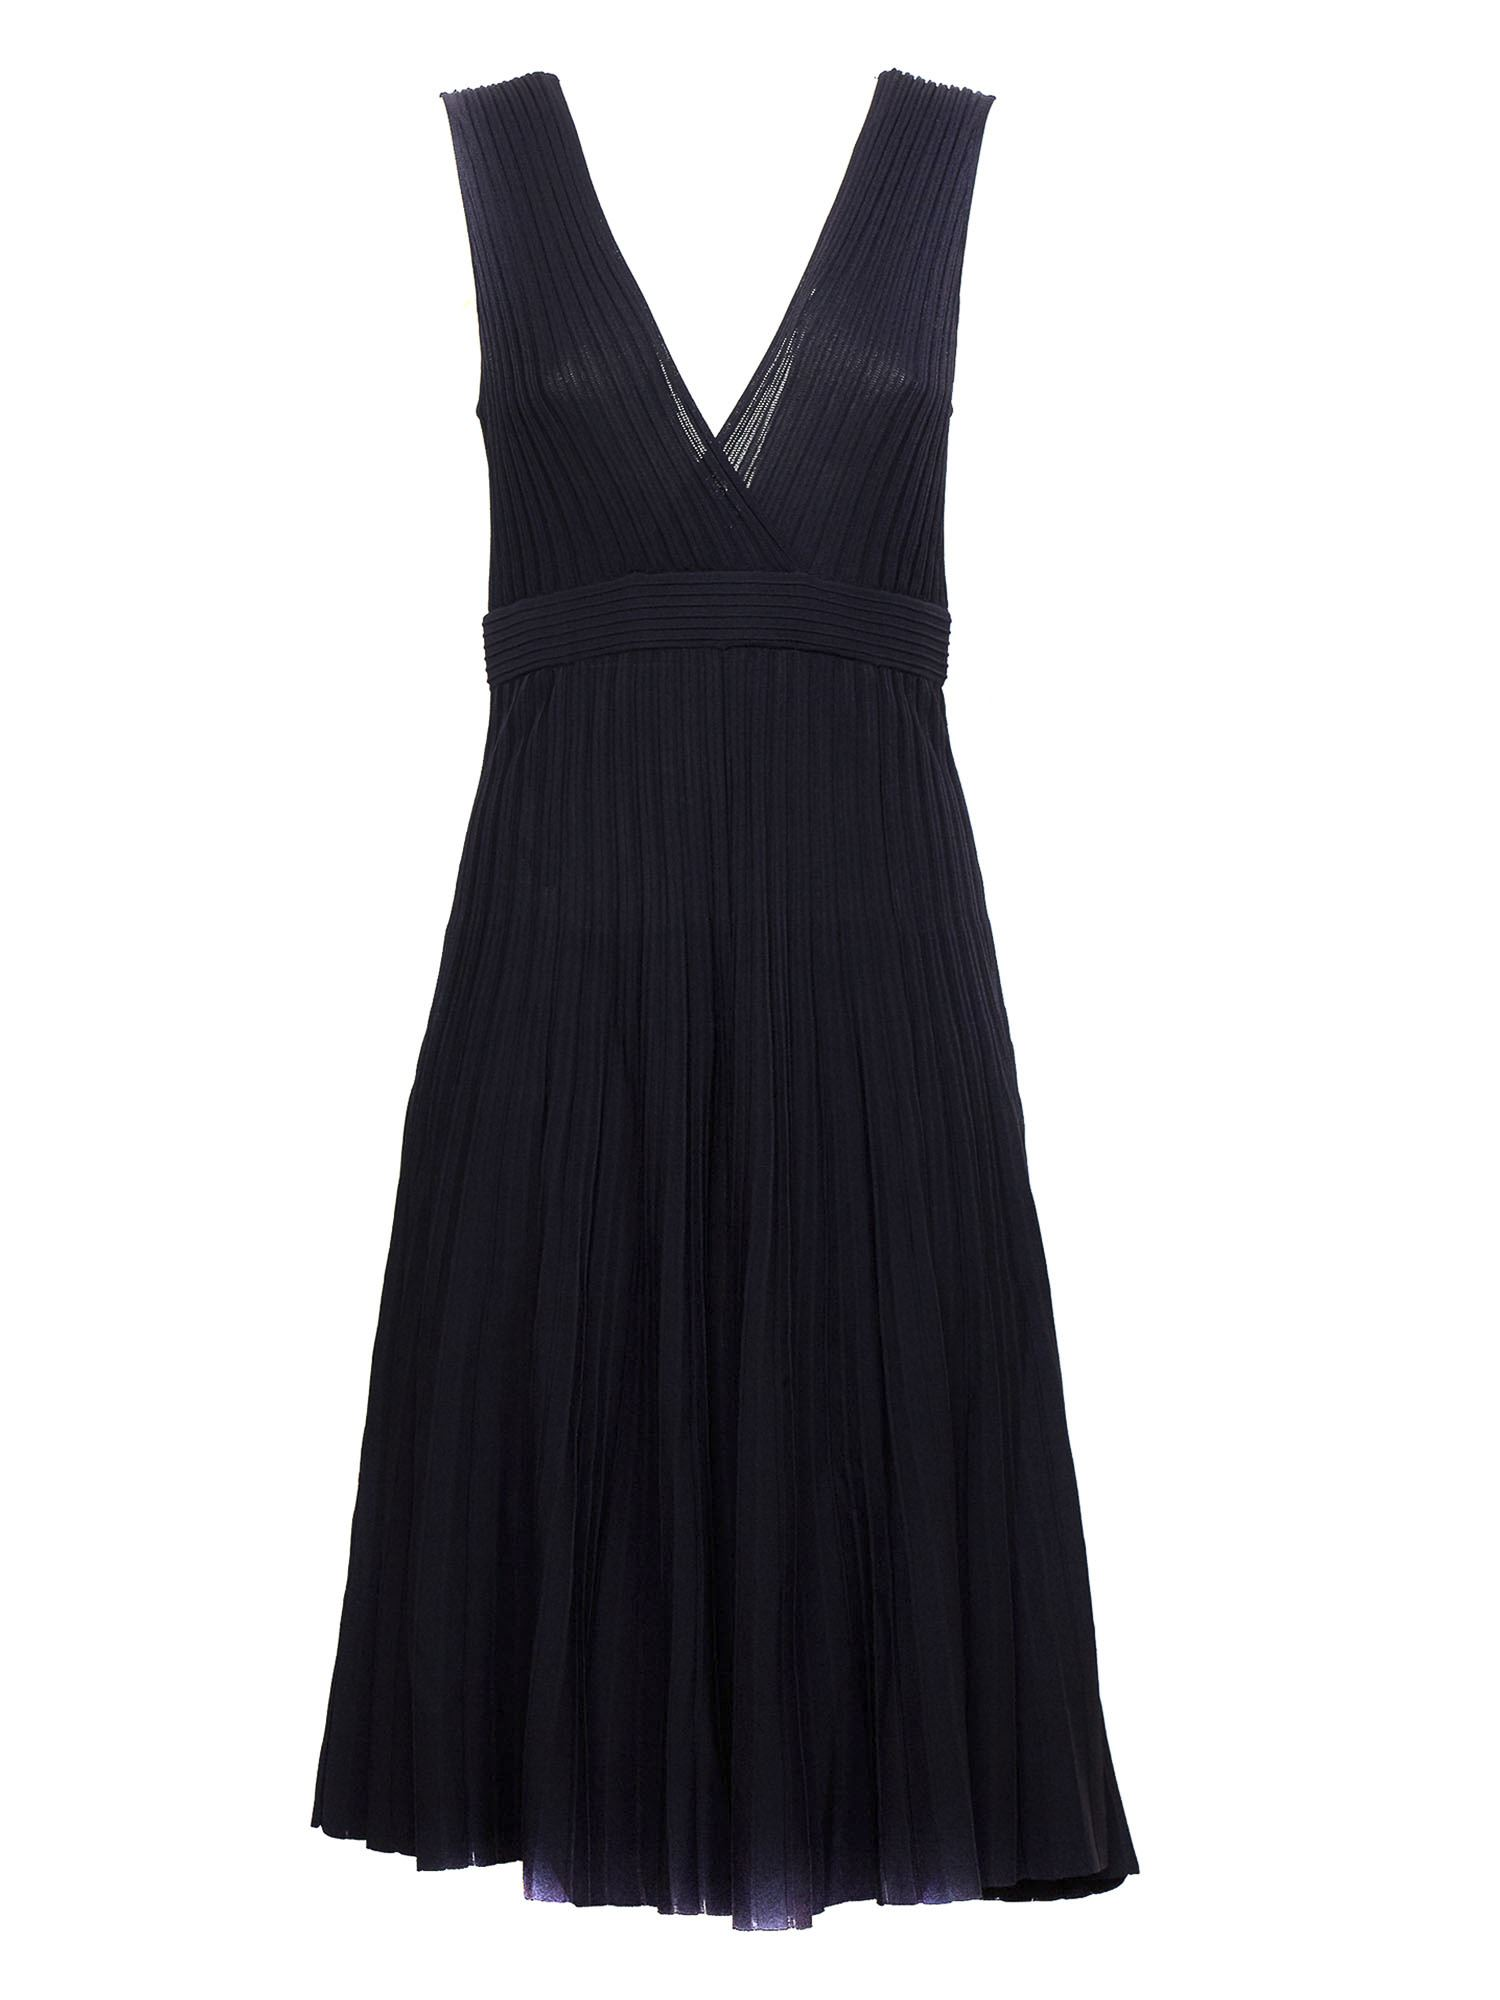 P.a.r.o.s.h. RIBBED DRESS IN BLUE